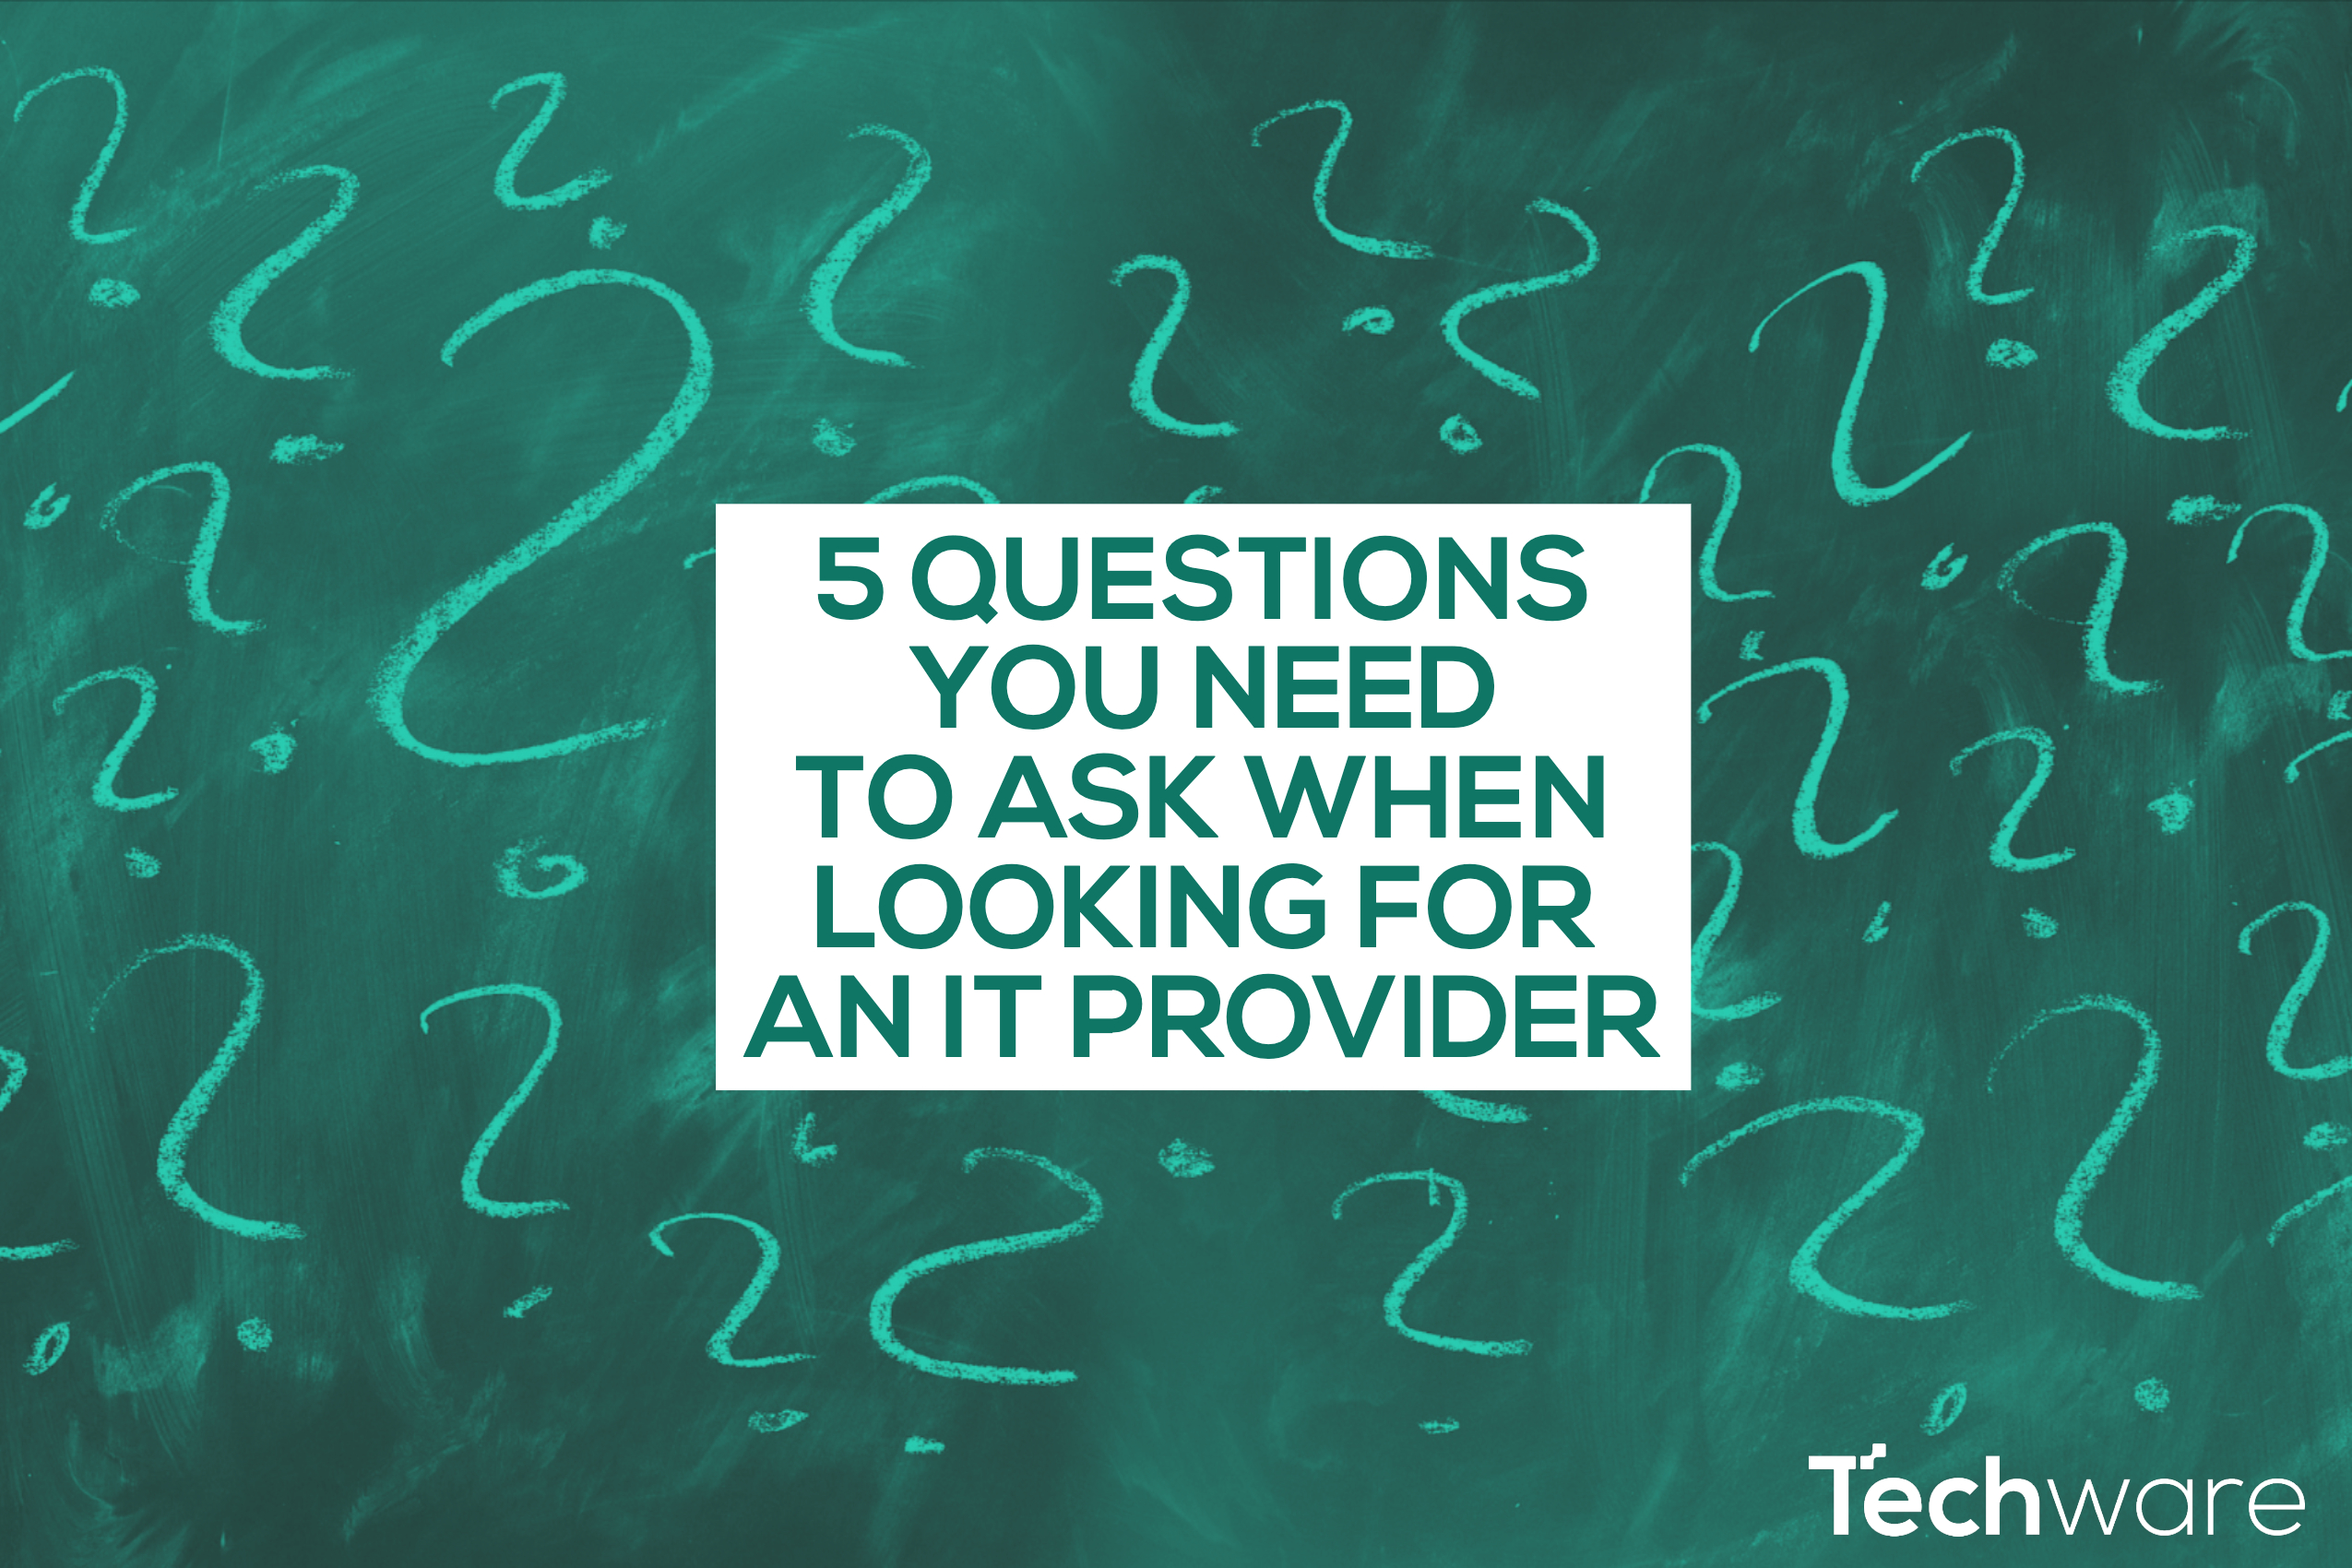 Five Questions You Need To Ask When Looking for an IT Provider